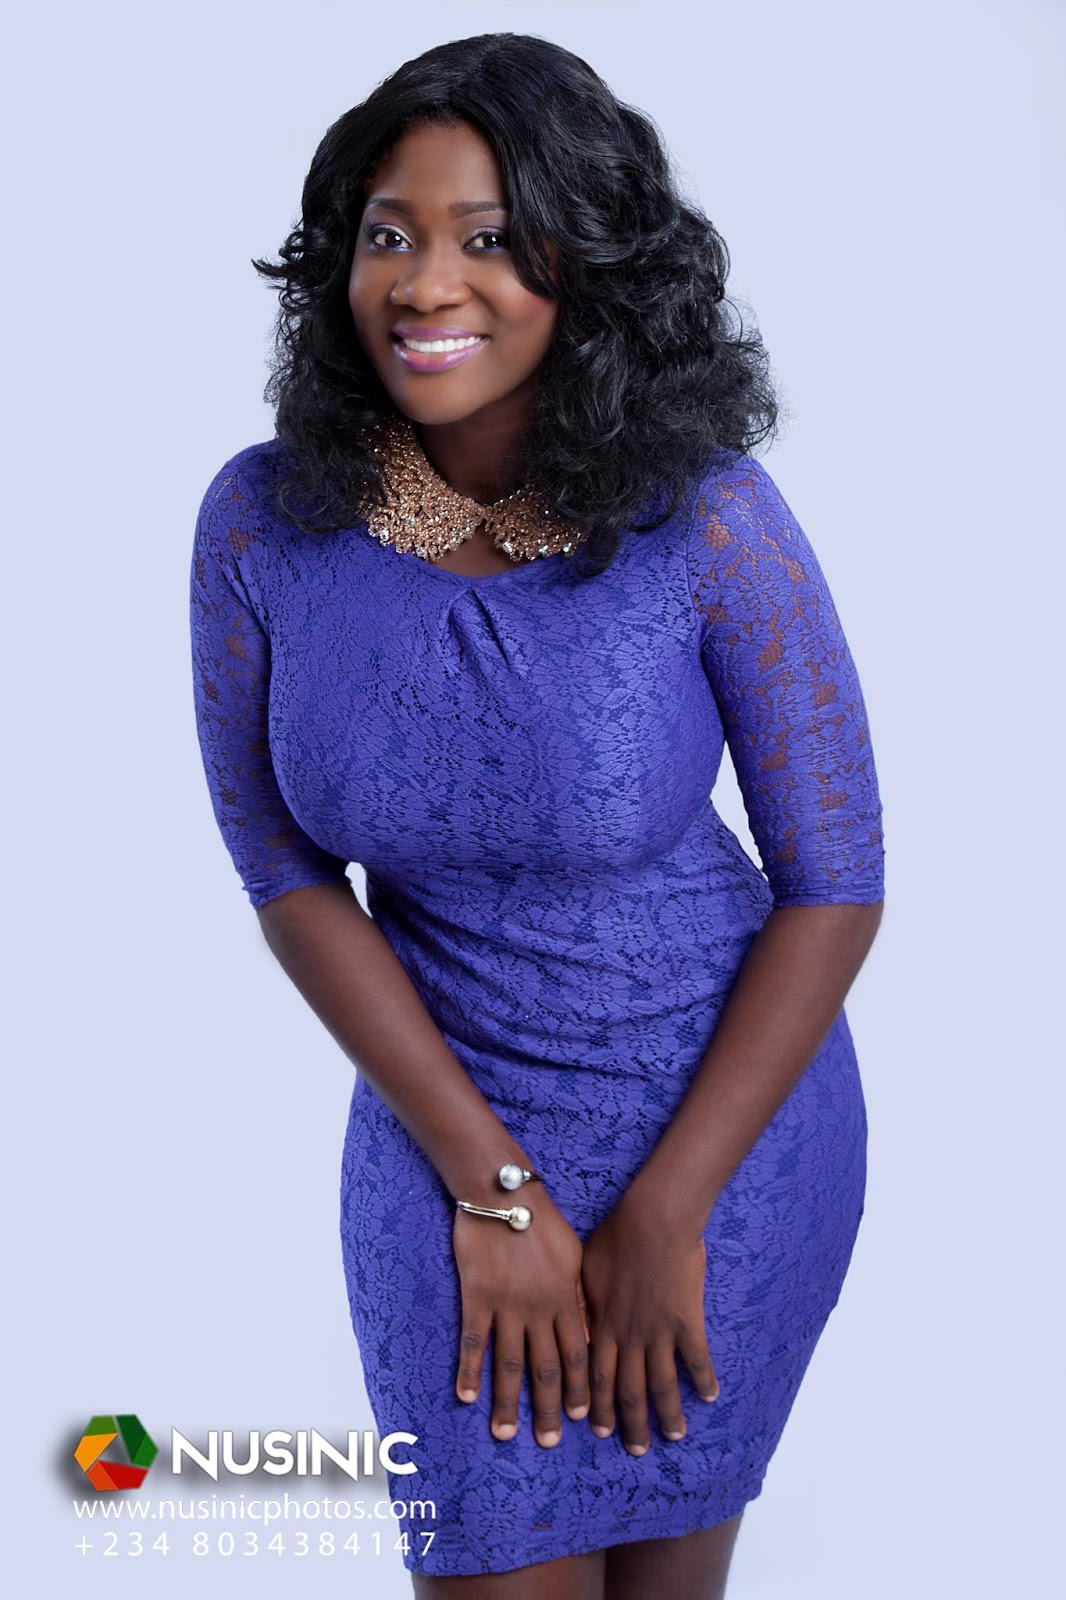 https://www.bellanaija.com/wp-content/uploads/2013/12/Mercy-Johnson-December-2013-BellaNaija-04.jpg